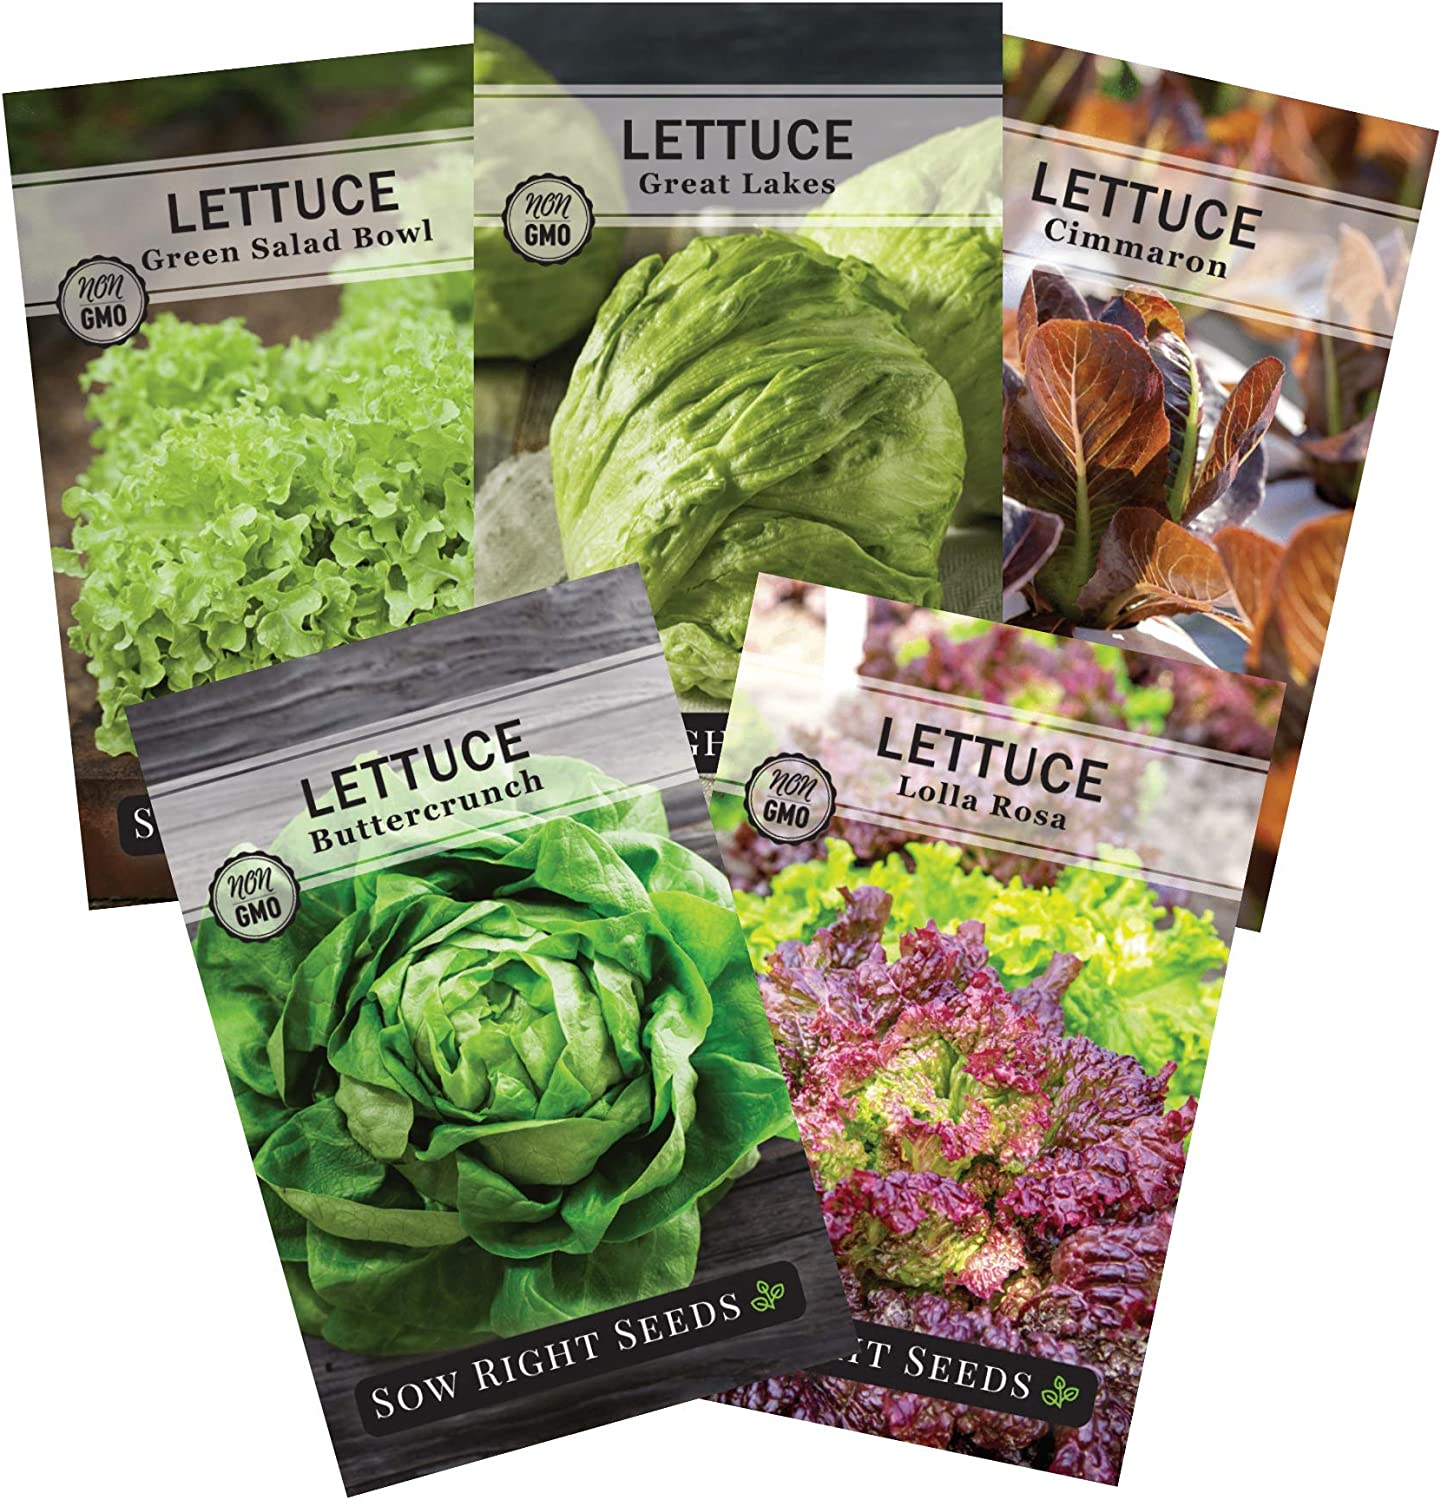 750 NON-GMO SEEDS Buttercrunch Lettuce Seeds